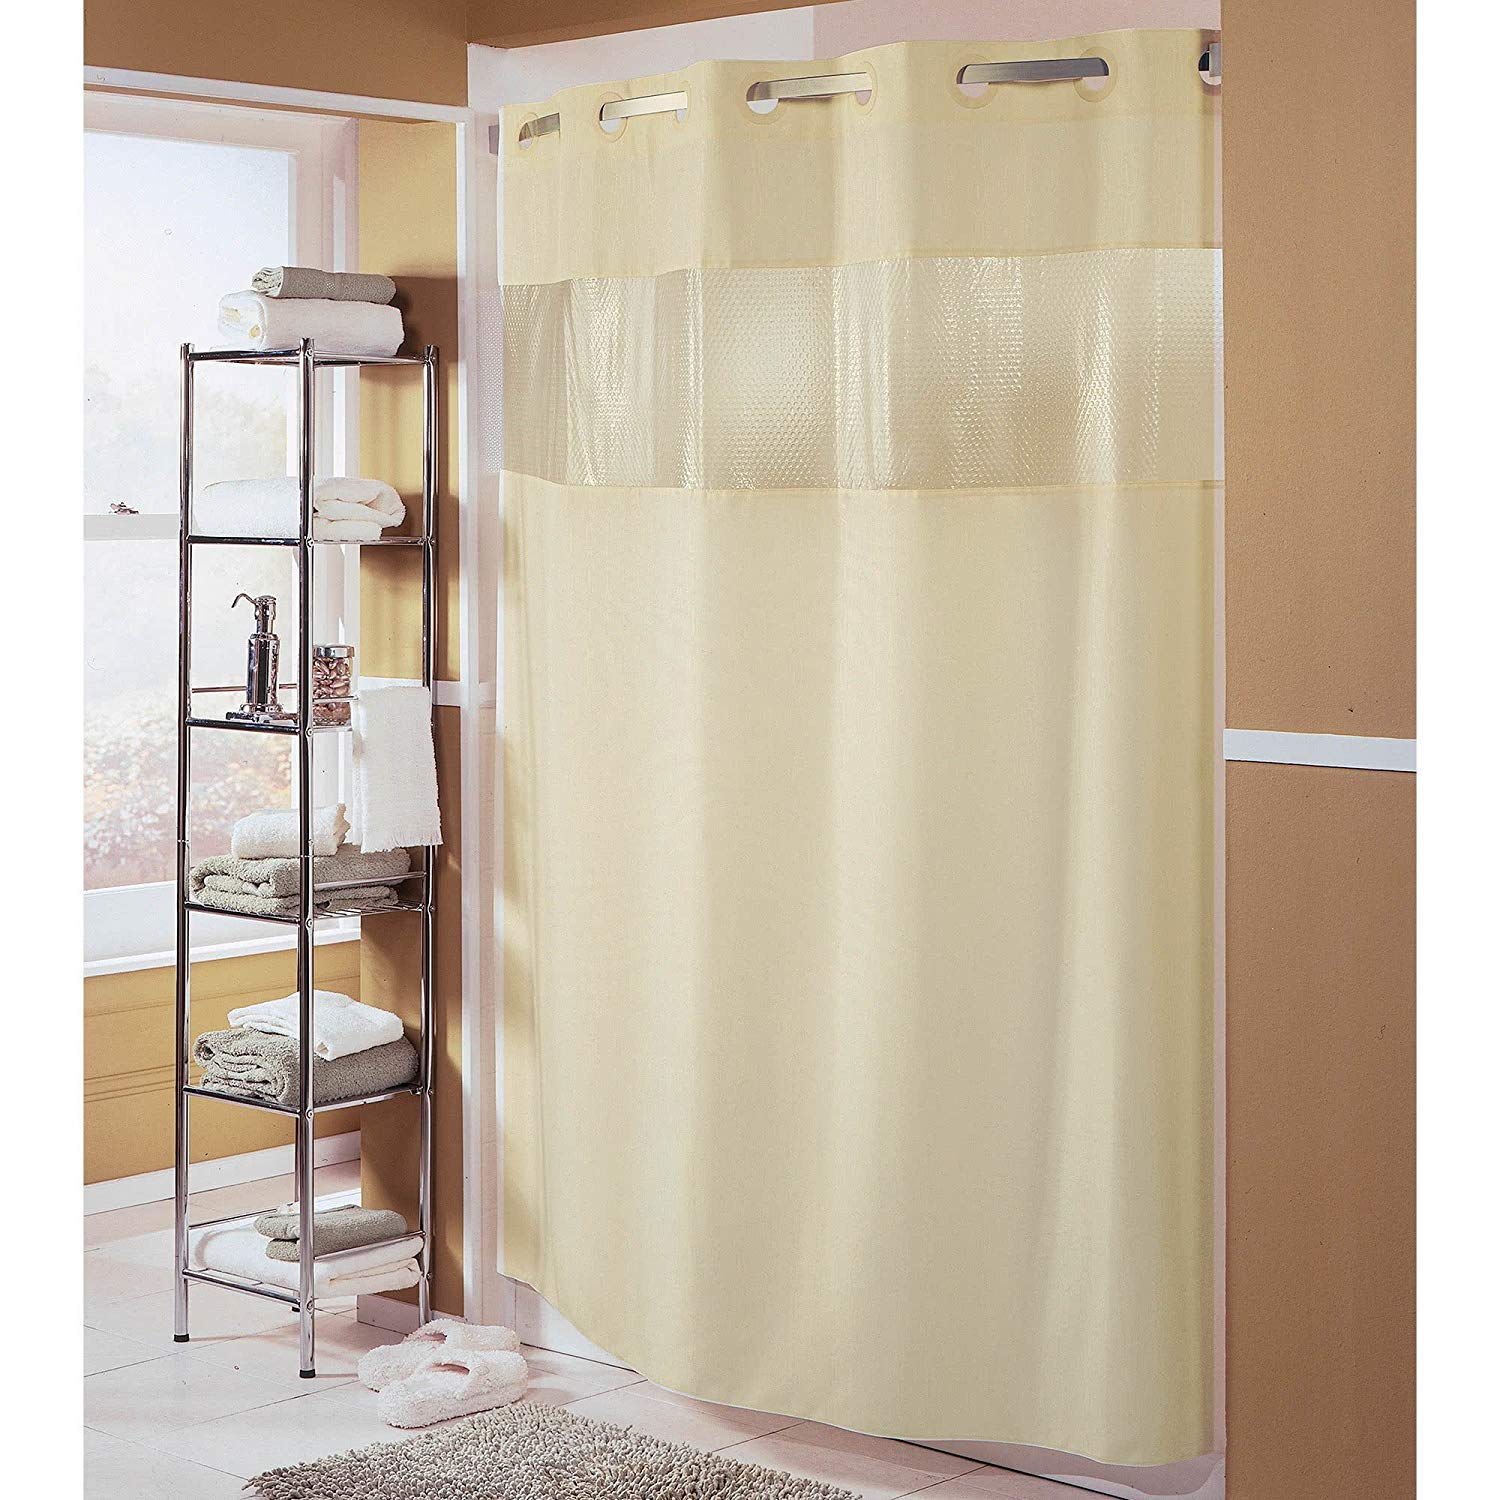 Cheap Hookless Shower Curtain Fabric Find Hookless Shower